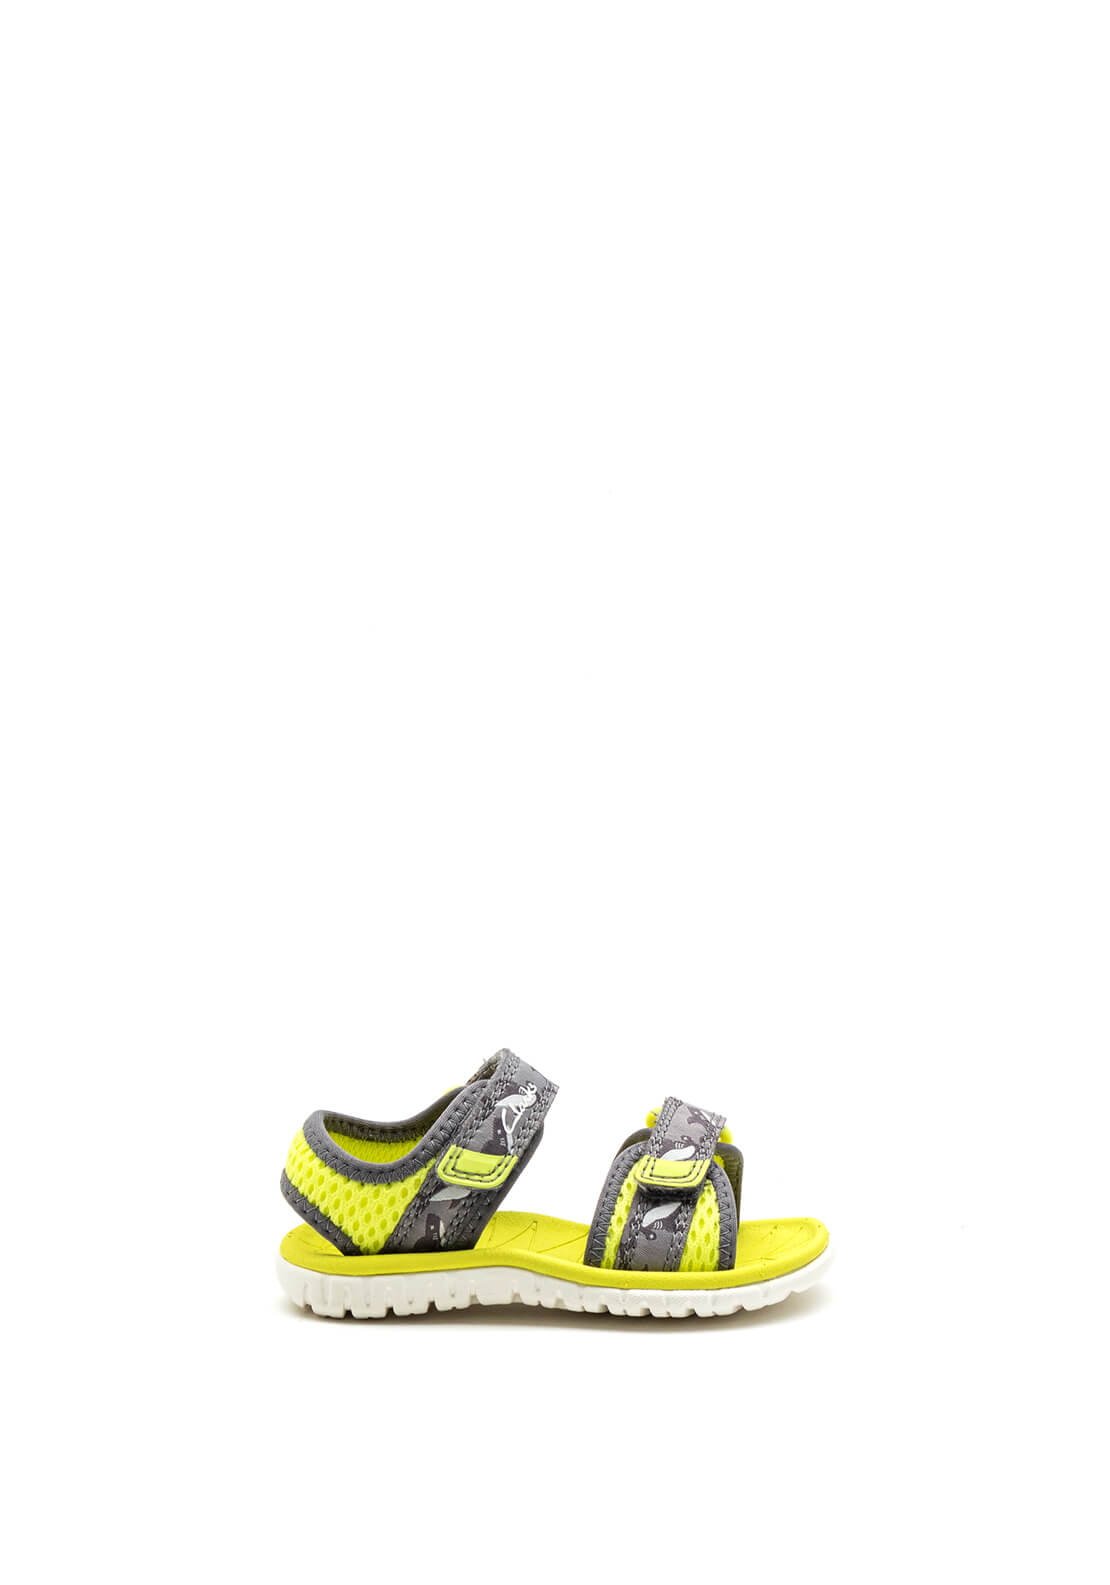 Clarks Baby Boys Surfing Tide Open Toe Sandals, Lime Green